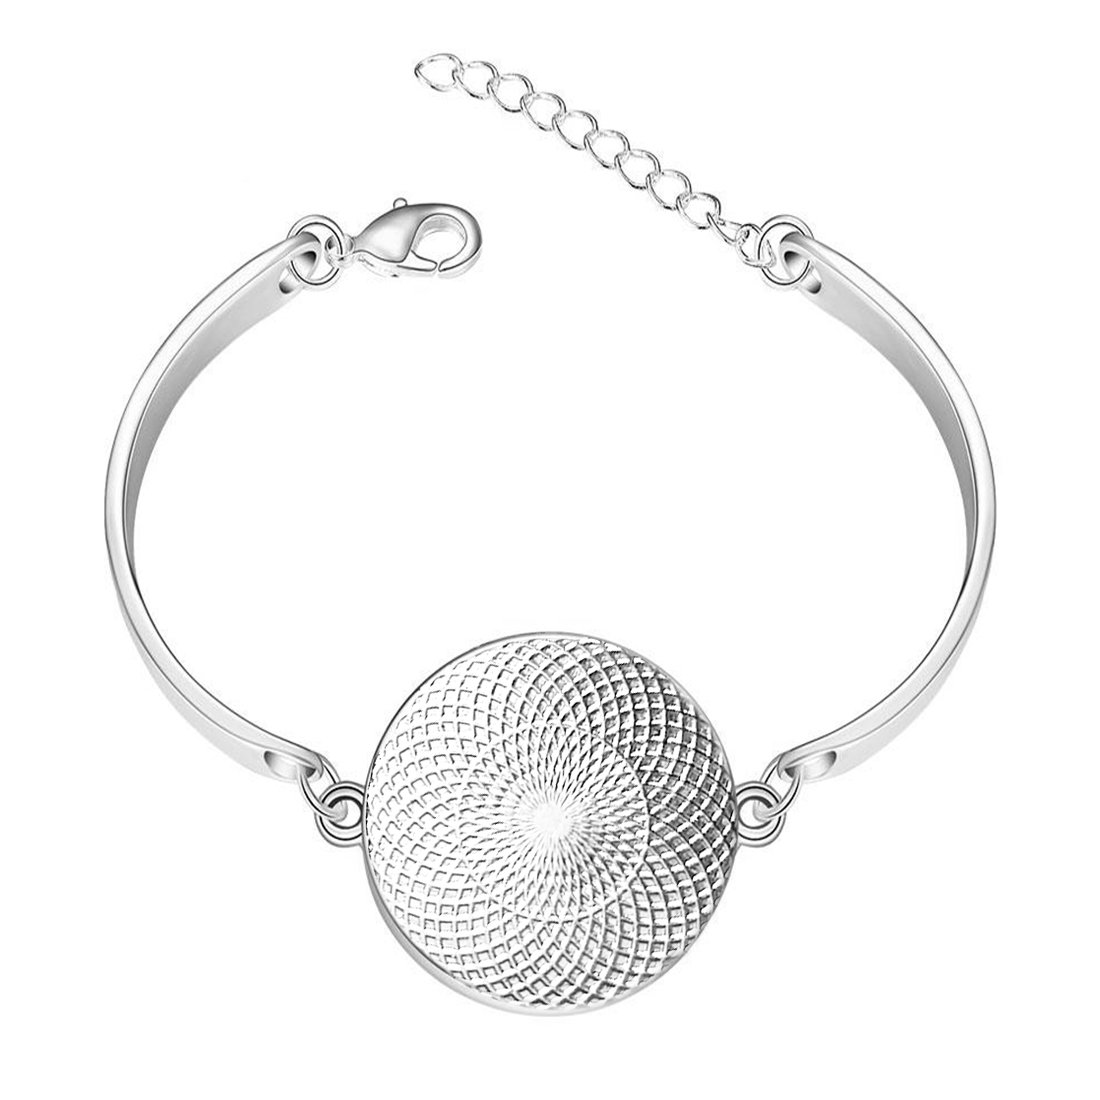 DOME-SPACE Adjustable Silver Bracelets Cute Dog CatHand Chain Link Bracelet Clear Bangle Custom Glass Cabochon Charm